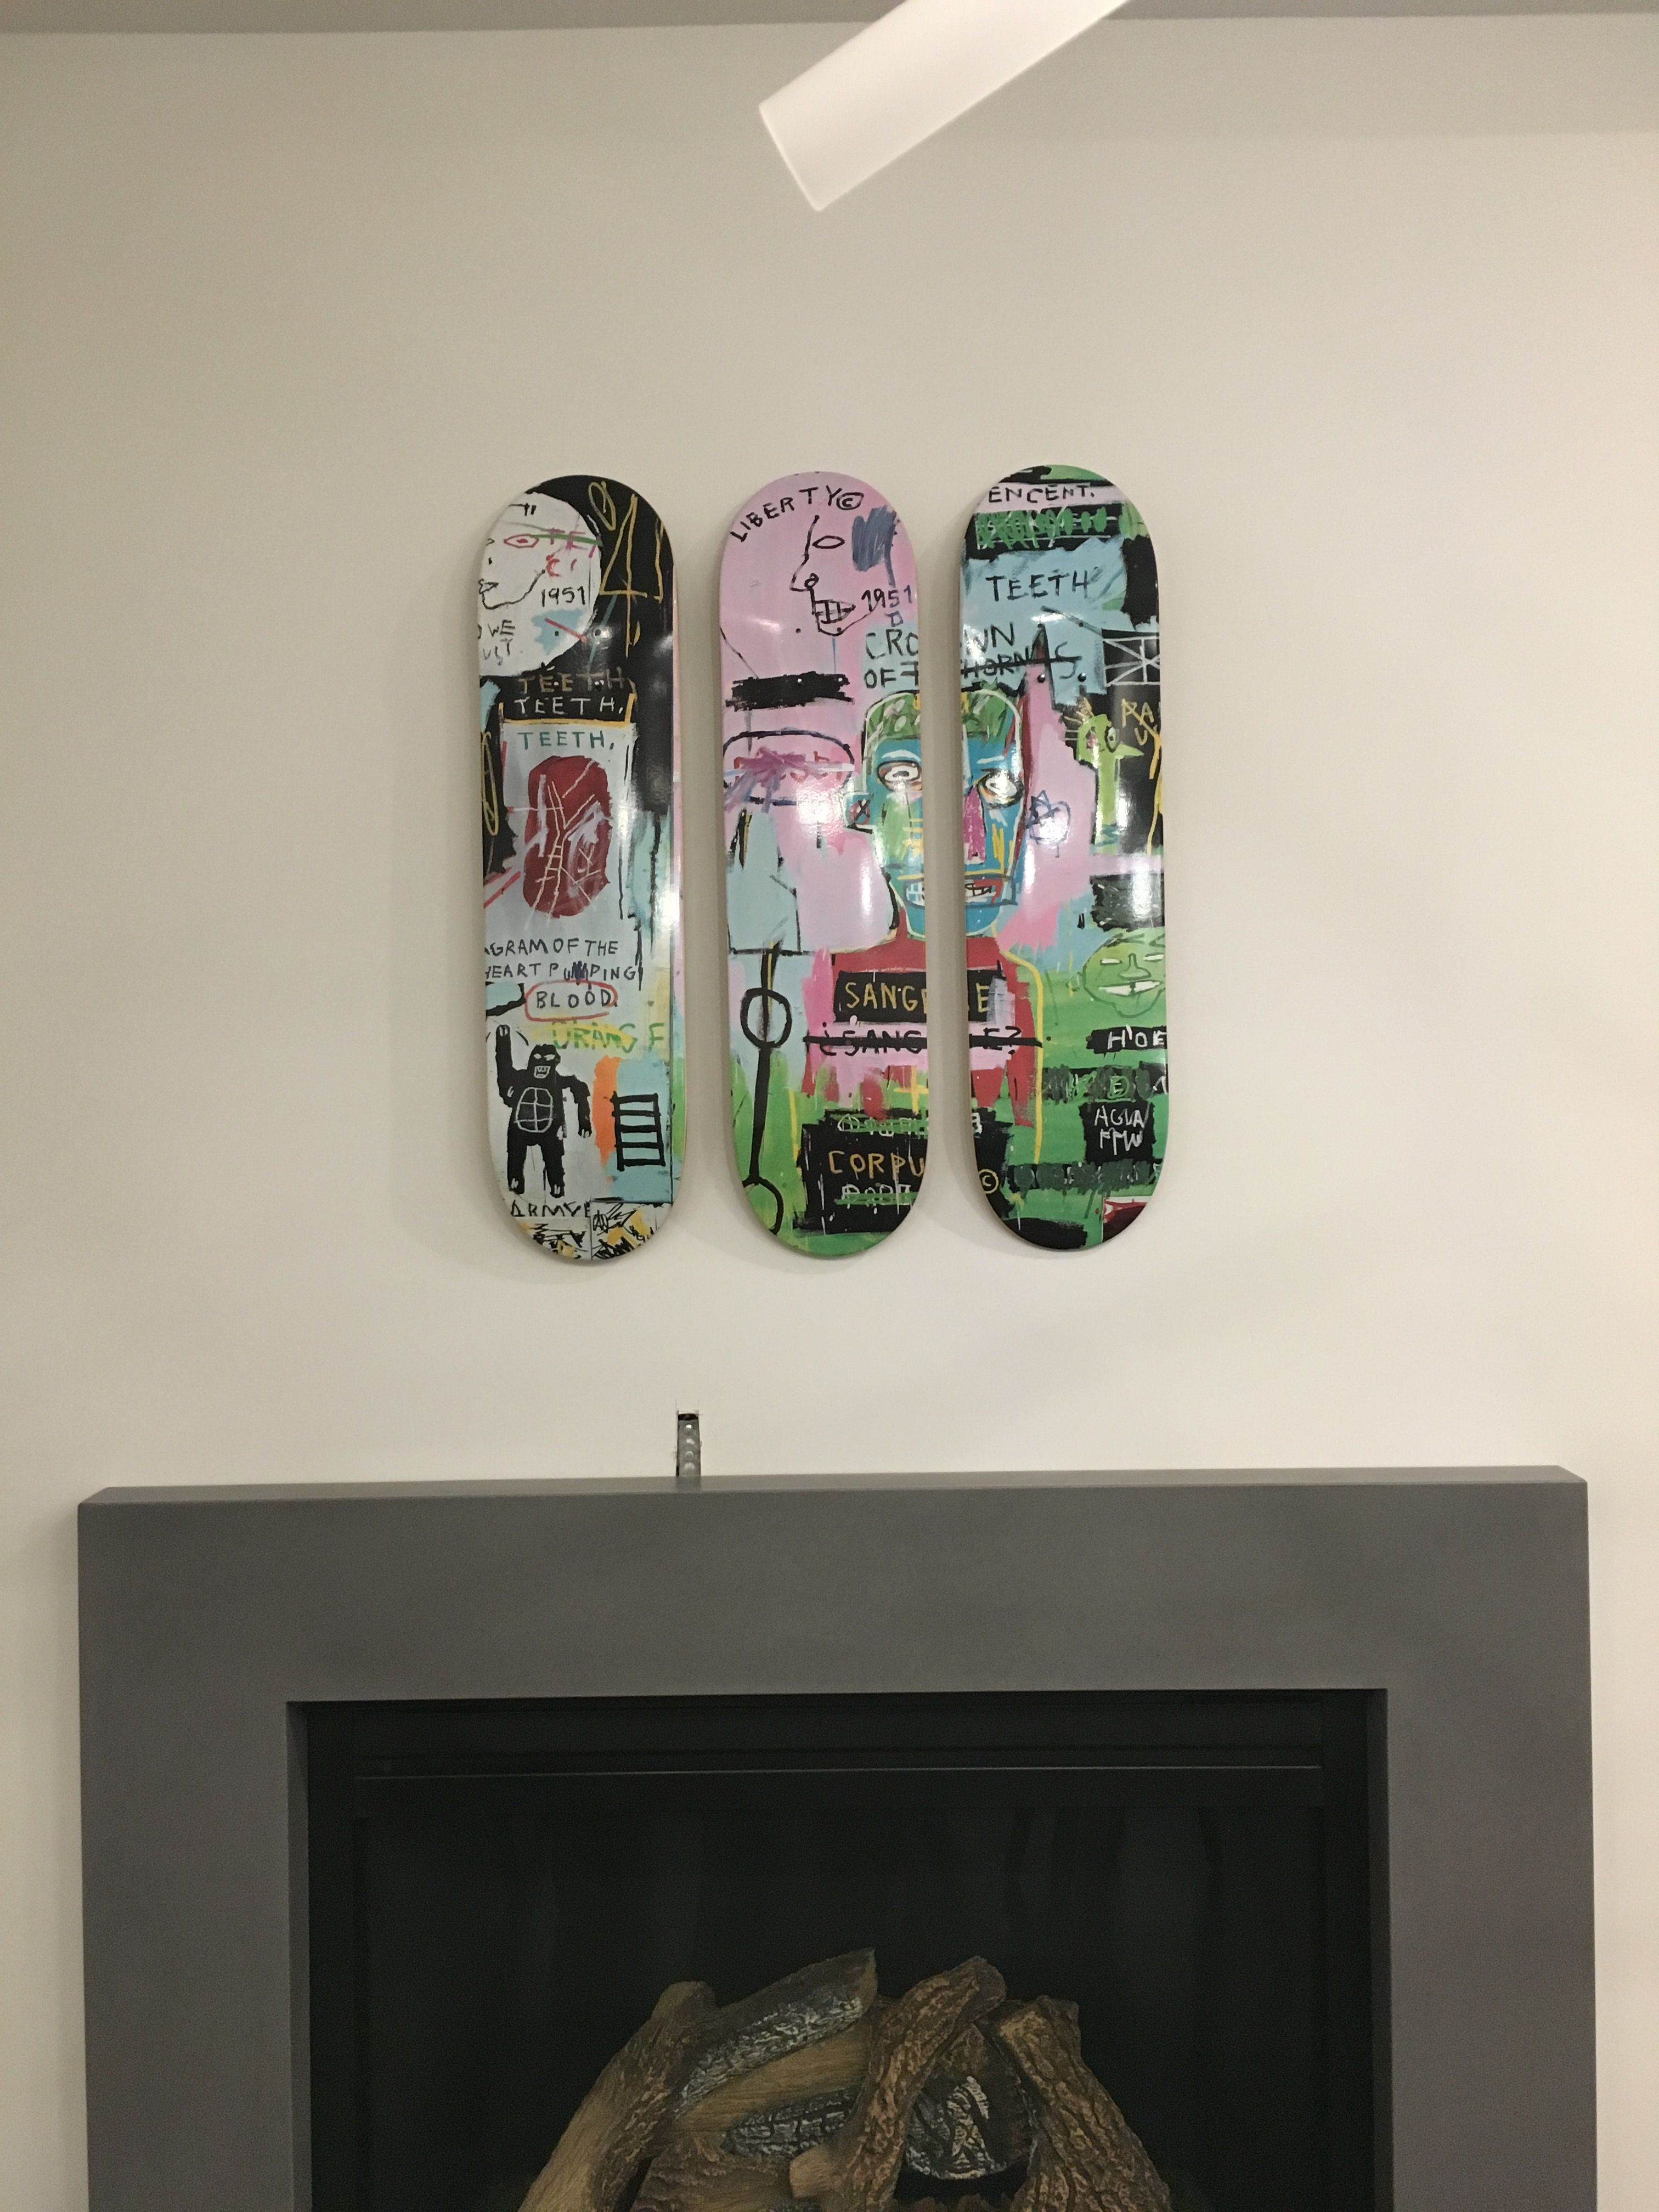 Skateboard professional picture hanging service custom framing skateboard professional picture hanging service custom framing by central galleries in cedarhurst ny 516 jeuxipadfo Image collections